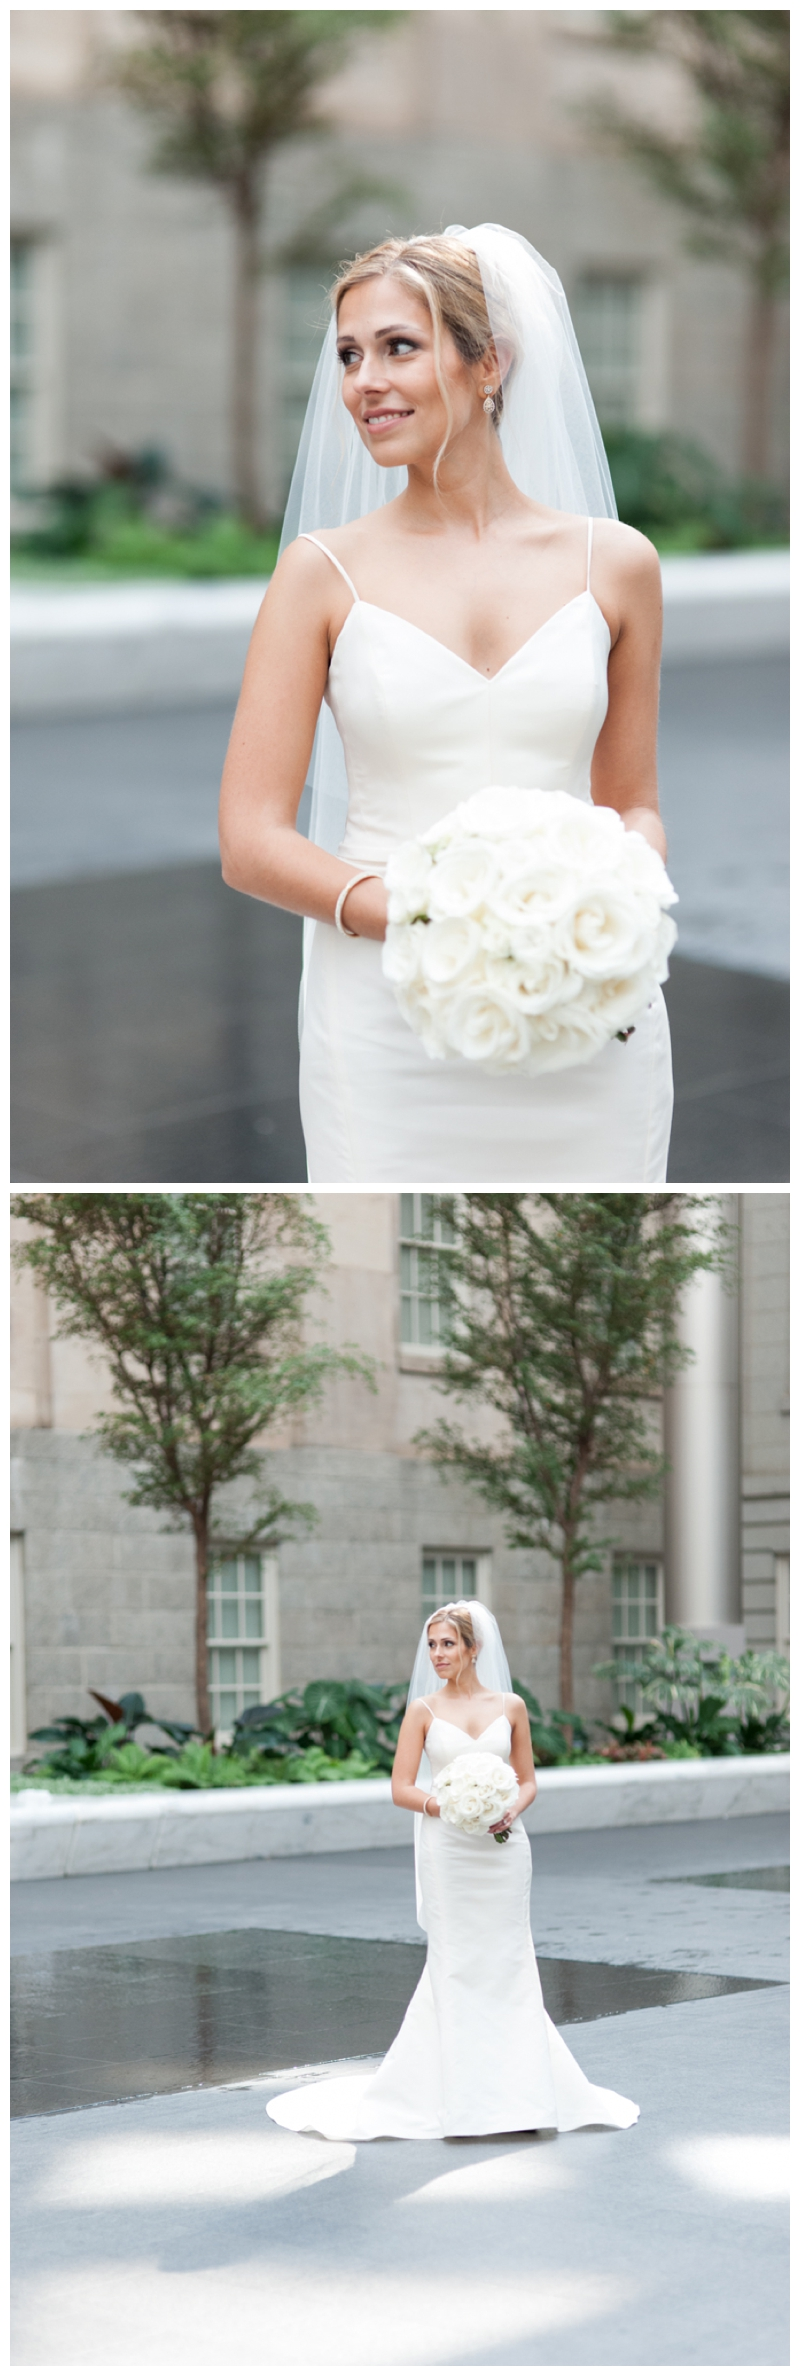 Wedding in Washington DC at the National Portrait Gallery by Rachael Foster Photography_0031.jpg